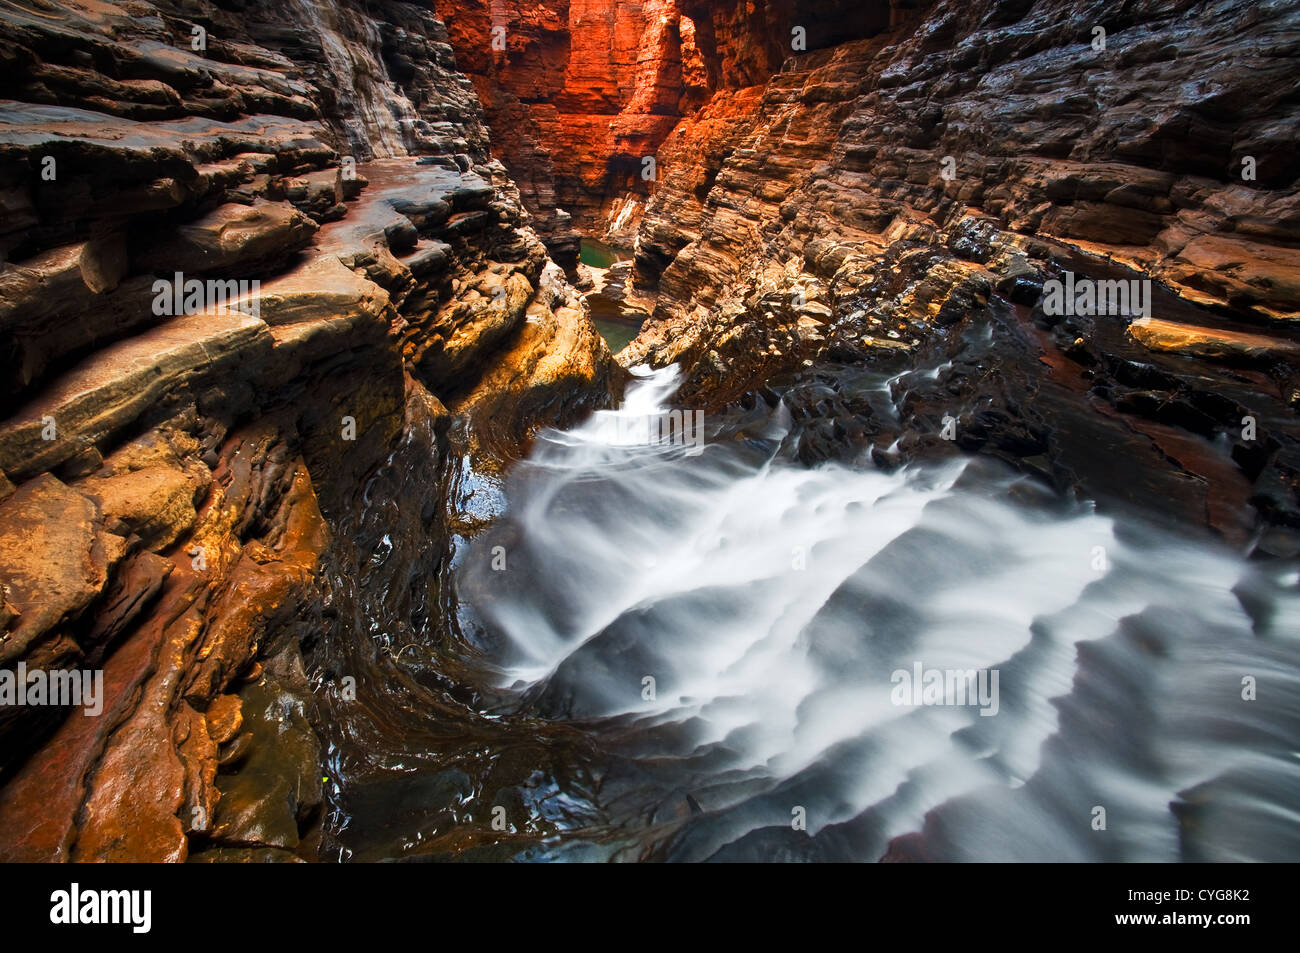 Water is running through narrow Hancock Gorge. - Stock Image